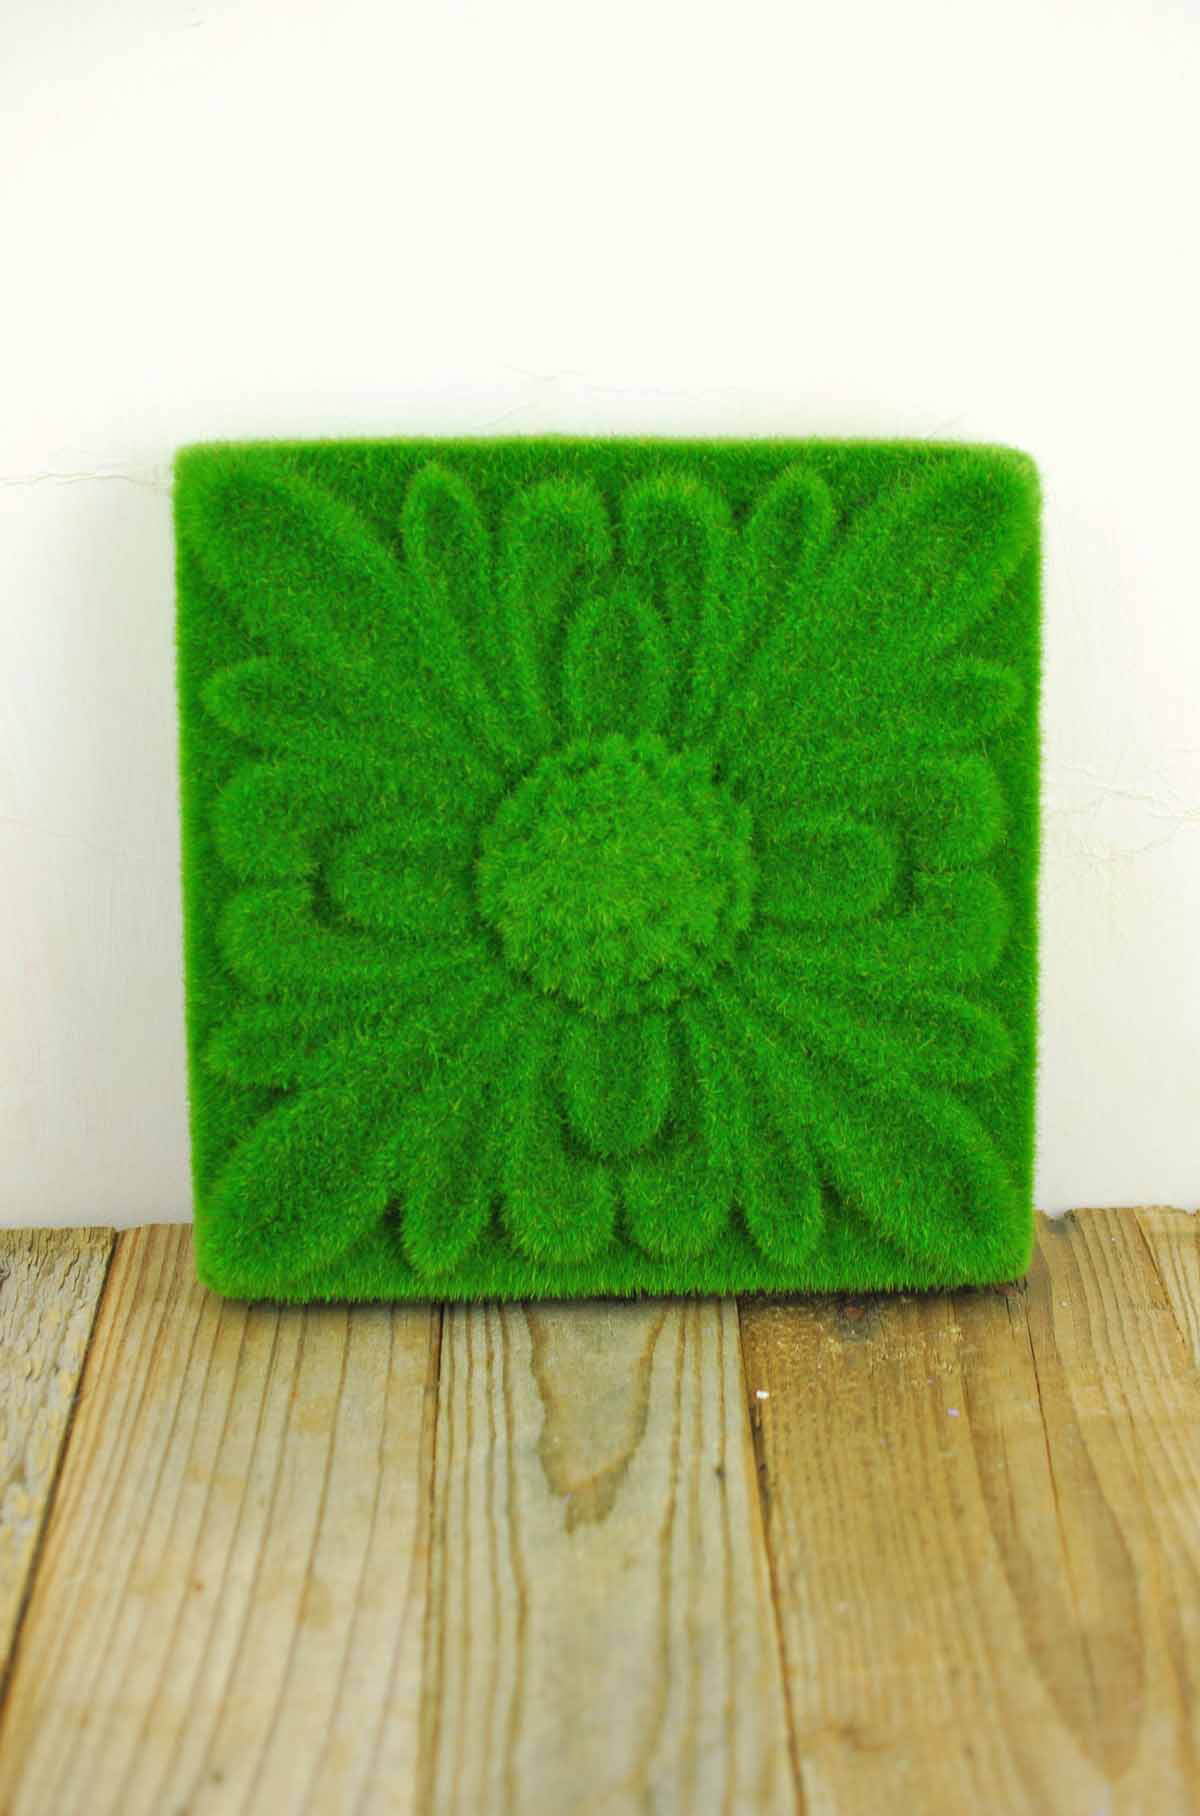 Moss Tile Floral 8 5in Pack Of 6